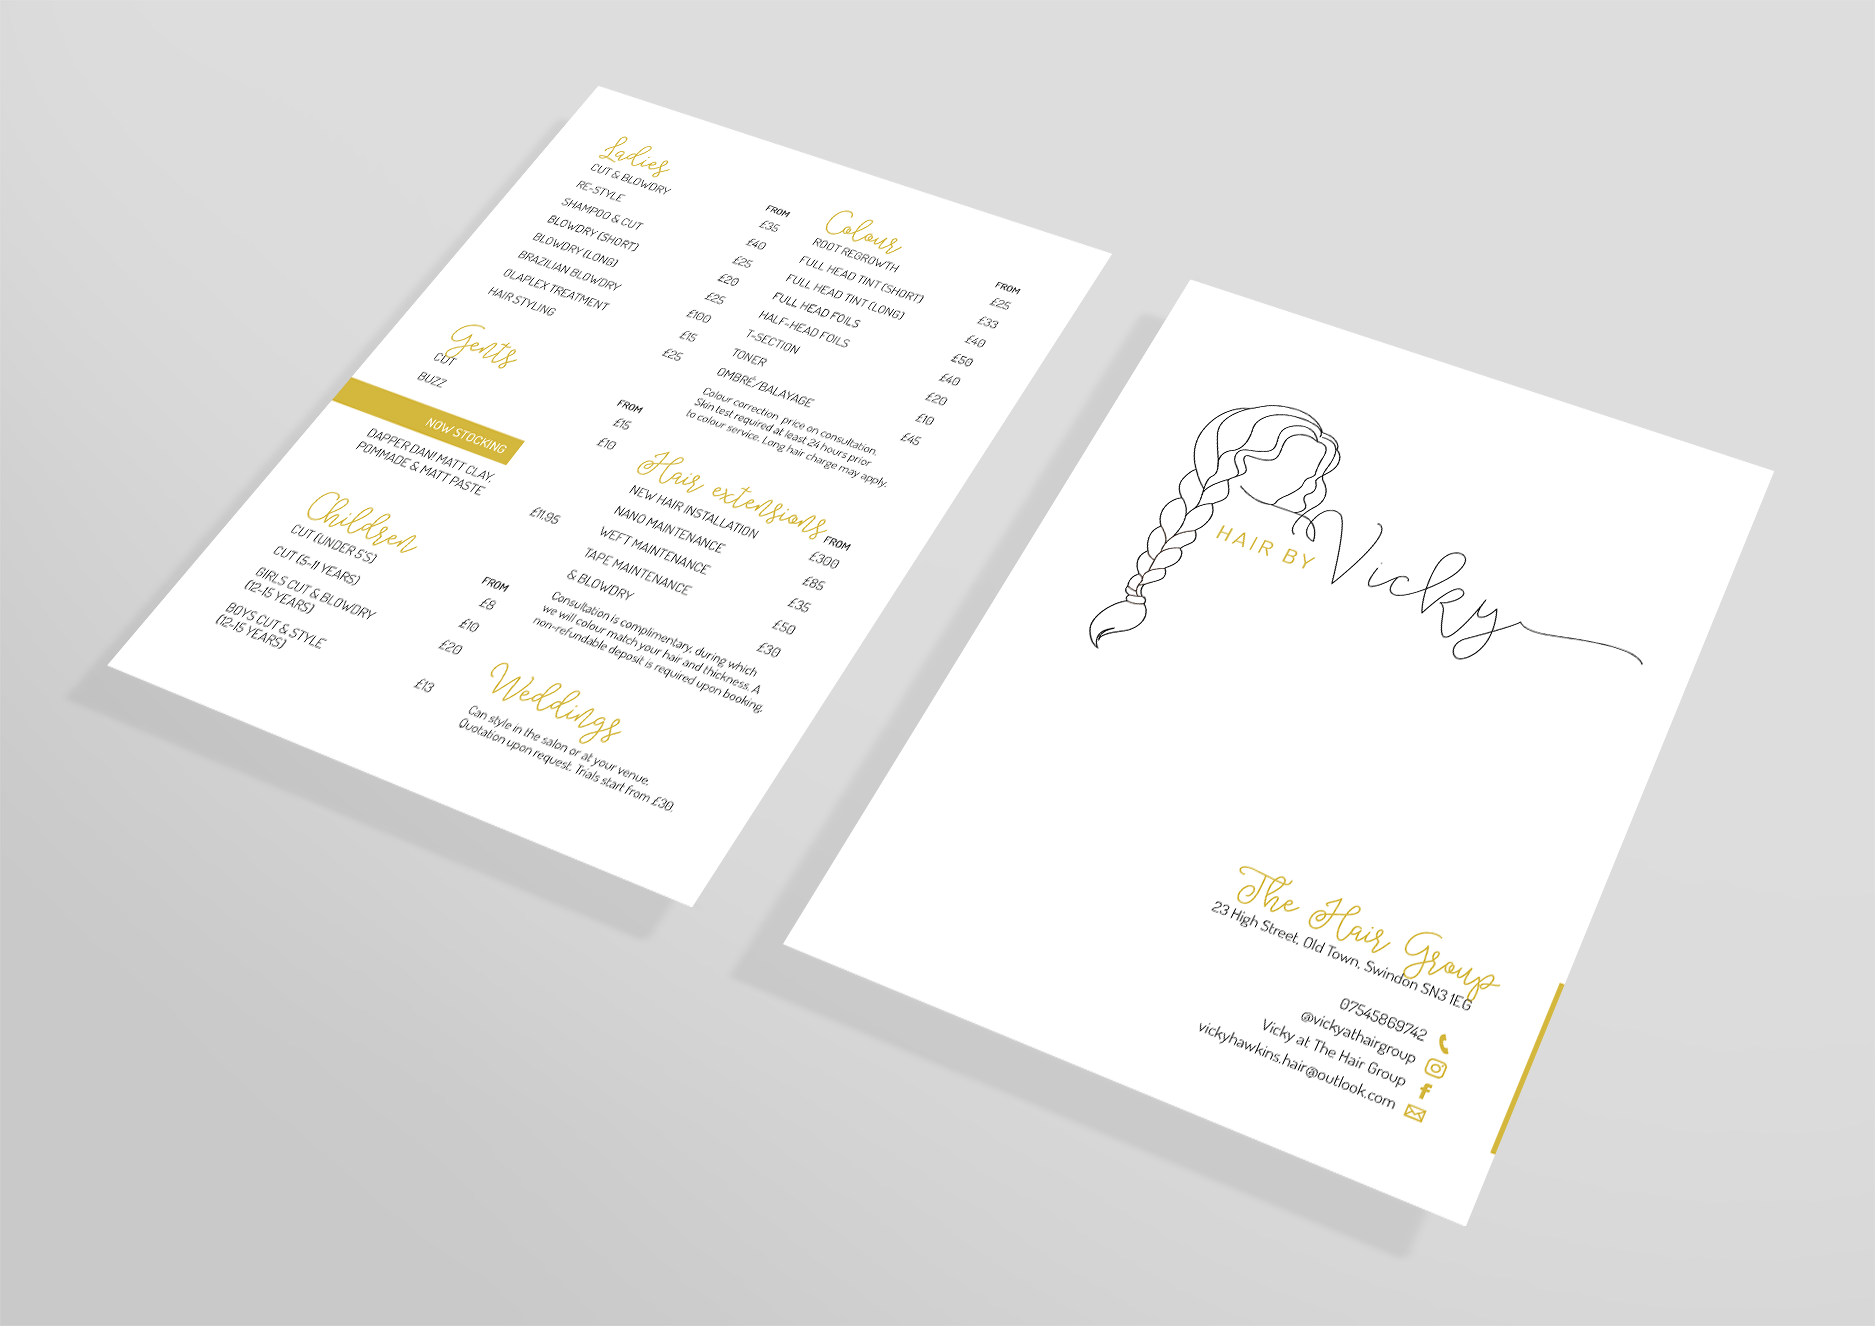 Price Lists for self-employed hairdresser, Hair by Vicky - designed by Wiltshire-based graphic designer, Kaye Huett